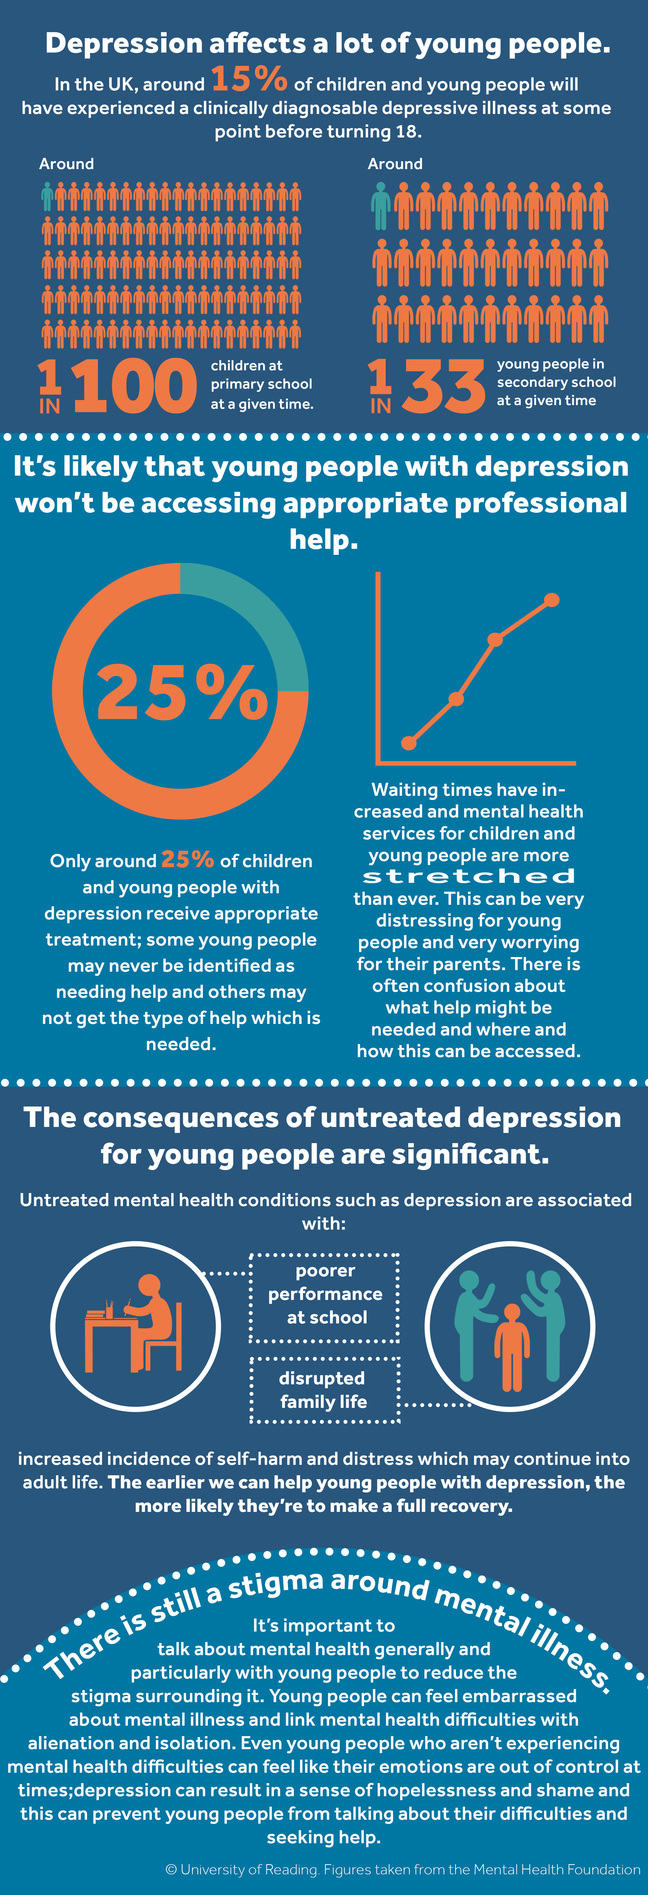 **Depression affects a lot of young people.** In the UK, around 15% of children and young people will have experienced a clinically diagnosable depressive illness at some point before turning 18 (around 1 in 100 children at primary school and 1 in 33 young people in secondary school at a given time).  **It's likely that young people with depression won't be accessing appropriate professional help.** Only around 25% of children and young people with depression receive appropriate treatment; some young people may never be identified as needing help and others may not get the type of help which is needed. Waiting times have increased and mental health services for children and young people are more stretched than ever. This can be very distressing for young people and very worrying for their parents. There is often confusion about what help might be needed and where and how this can be accessed. **The consequences of untreated depression for young people are significant.** Untreated mental health conditions such as depression are associated with poorer performance at school, disrupted family life, increased incidence of self-harm and distress which may continue into adult life. The earlier we can help young people with depression, the more likely they are to make a full recovery. **There is still a stigma around mental illness.** It's important to talk about mental health generally and particularly with young people to reduce the stigma surrounding it. Young people can feel embarrassed about mental illness and link mental health difficulties with alienation and isolation. Even young people who aren't experiencing mental health difficulties can feel like their emotions are out of control at times; depression can result in a sense of hopelessness and shame and this can prevent young people from talking about their difficulties and seeking help.  We're extremely keen to develop this programme to increase public knowledge around depression in young people, and we wanted to provide a resource which would be helpful to both parents and professionals. We hope that by offering information about the condition itself and outlining practical ways to offer support, that young people with depression will feel more understood and better supported. **Some of the factors which may influence a young person's depression may be outside your control. It's important to remember that there are many steps you can take to promote positive mental health and make a real difference.**